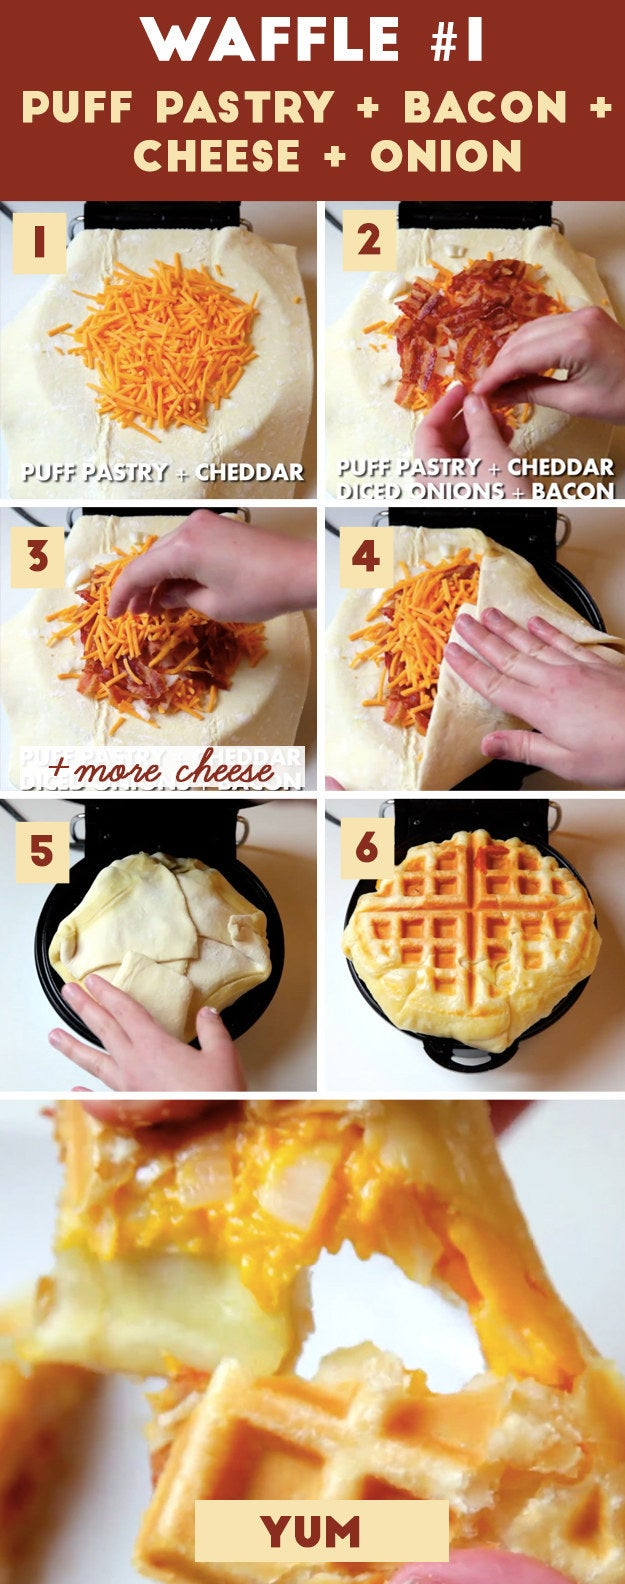 Here's how to make it: 1. Spray both sides of your waffle maker with nonstick cooking spray, then lay a sheet of puff pastry dough down on the bottom half. Sprinkle a layer of cheese in the center of the waffle.2. Add onions and crumbled-ish bacon. 3. ADD MORE CHEESE. MOAR. 4 and 5. Fold in the edges of your pastry dough and seal the edges (otherwise, the cheese might leak out while it's cooking). 6. Close your waffle maker, and cook until the puff pastry is golden brown and ~delicious~. It'll take about 5 - 7 minutes, depending on your waffle maker. 7. SAVOR THE BACONY ONIONY CHEESYNESS.